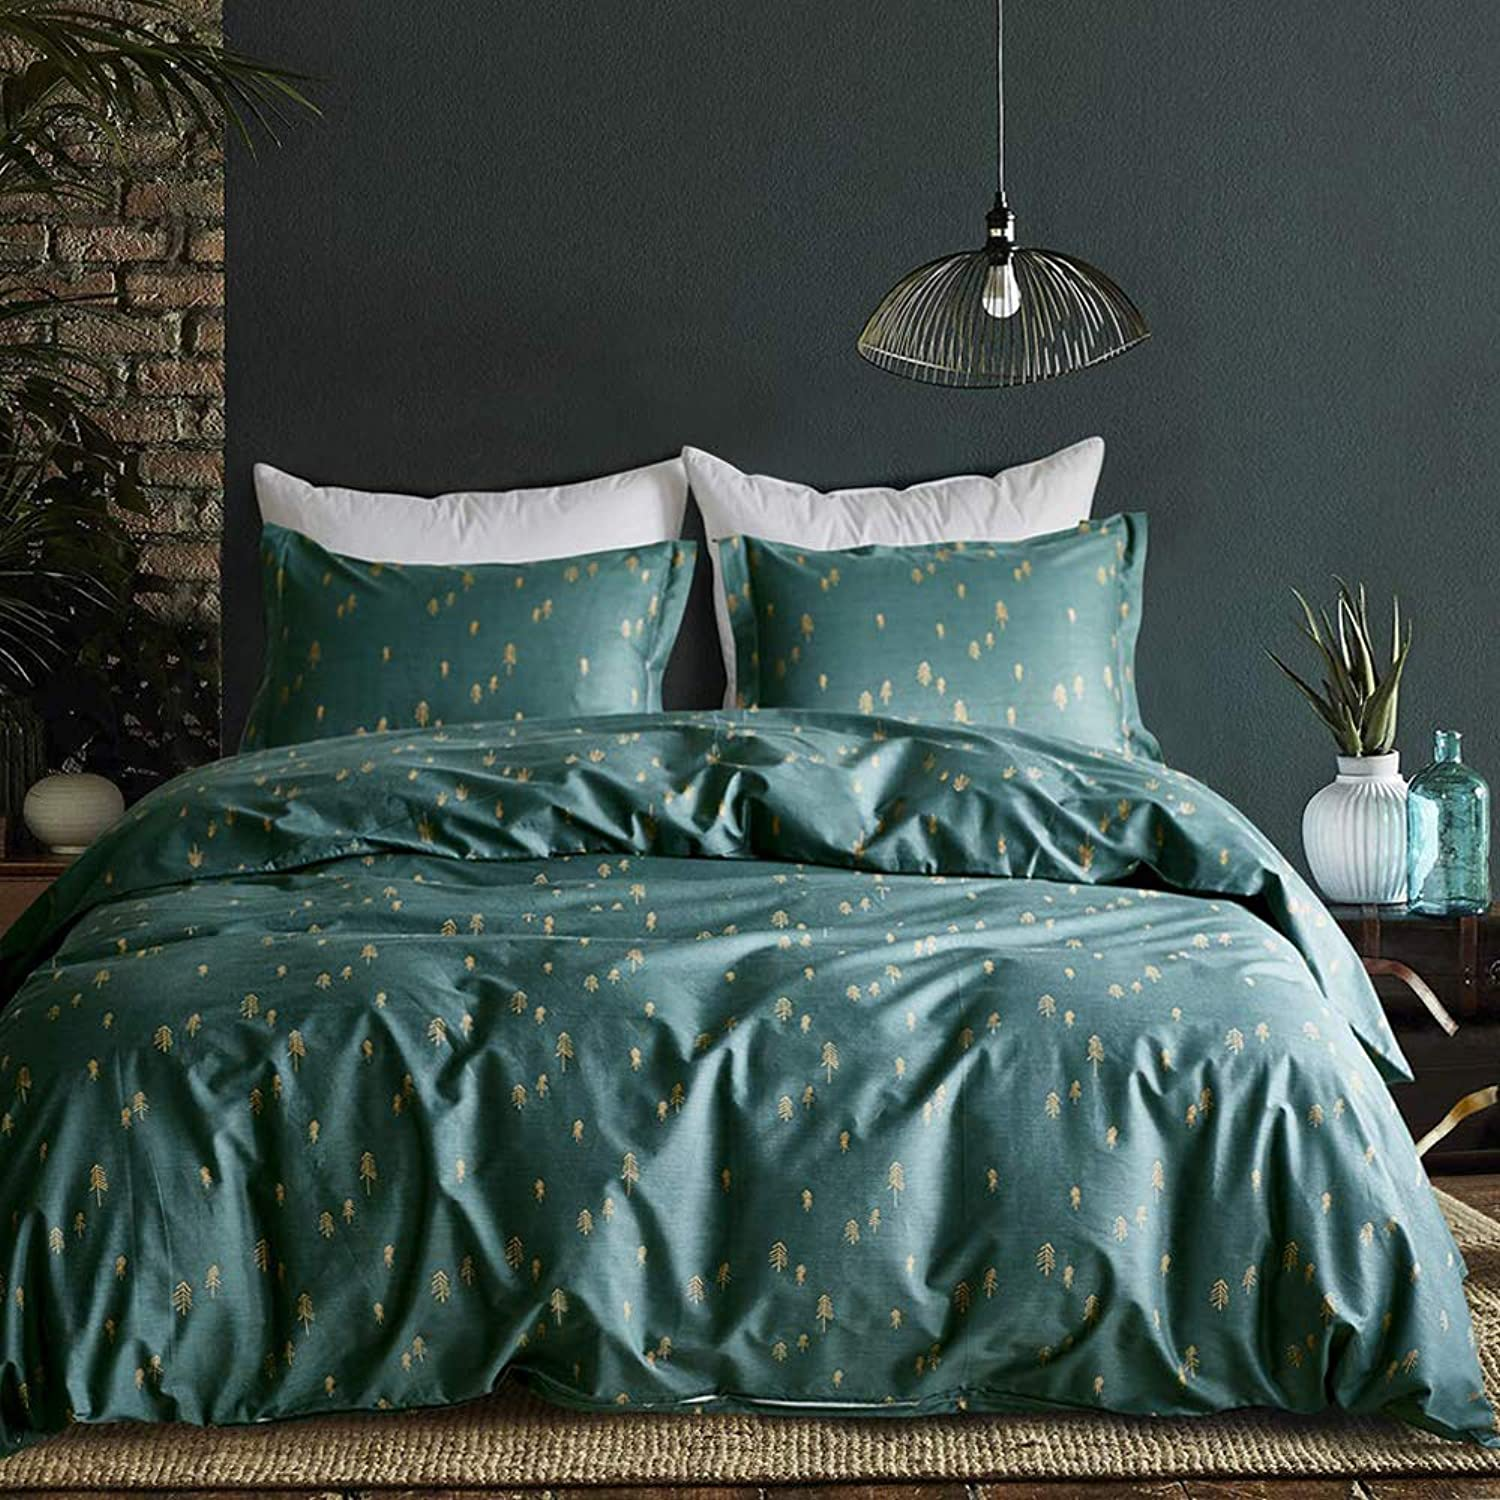 Mixinni 3 Pieces Duvet Cover Set, 100% Natural Cotton,gold Arrows Printed on King Size Green Duvet Cover with Zipper&Ties, 1 Duvet Cover and 2 Pillowcases, Ultra Soft,Breathable-Dark Green